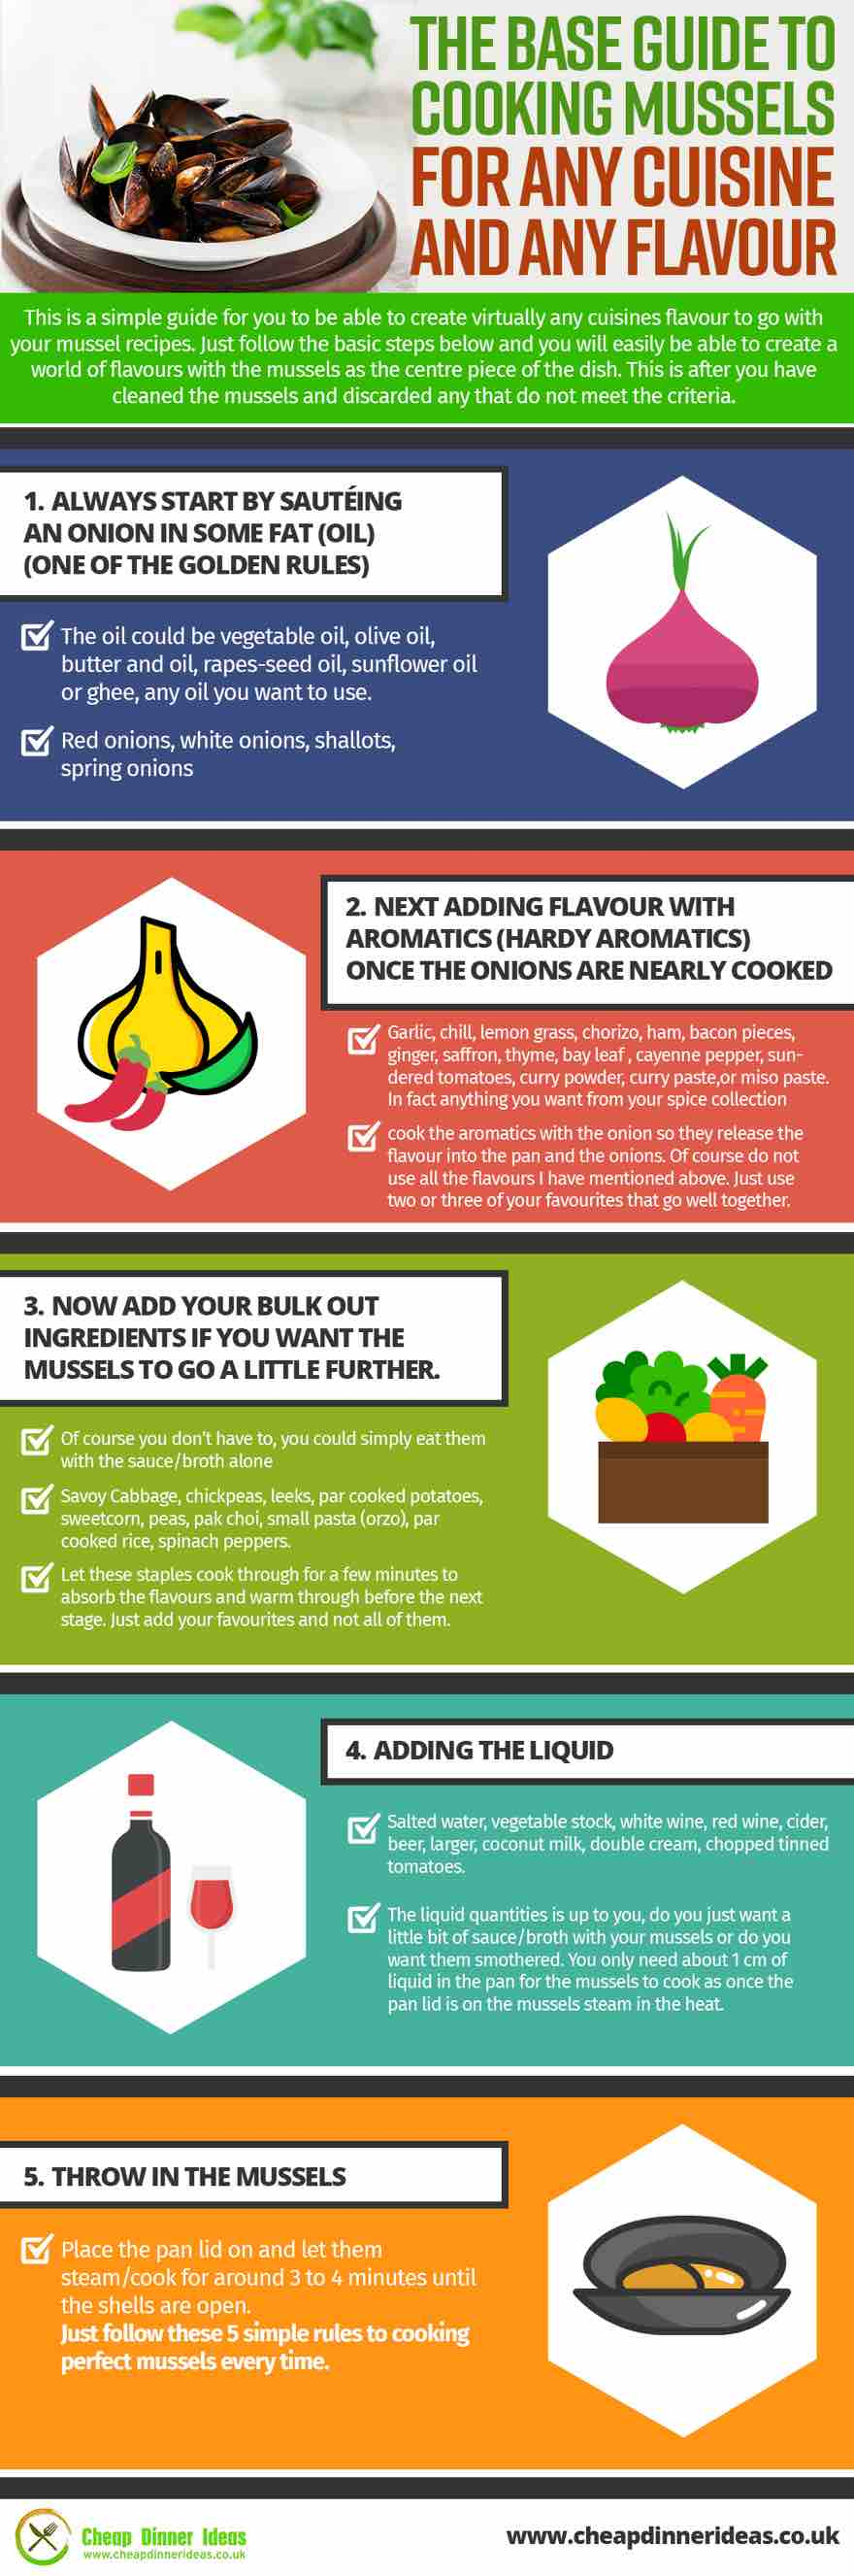 mussels info graph on how to cook mussels for any cuisine in 5 simple steps